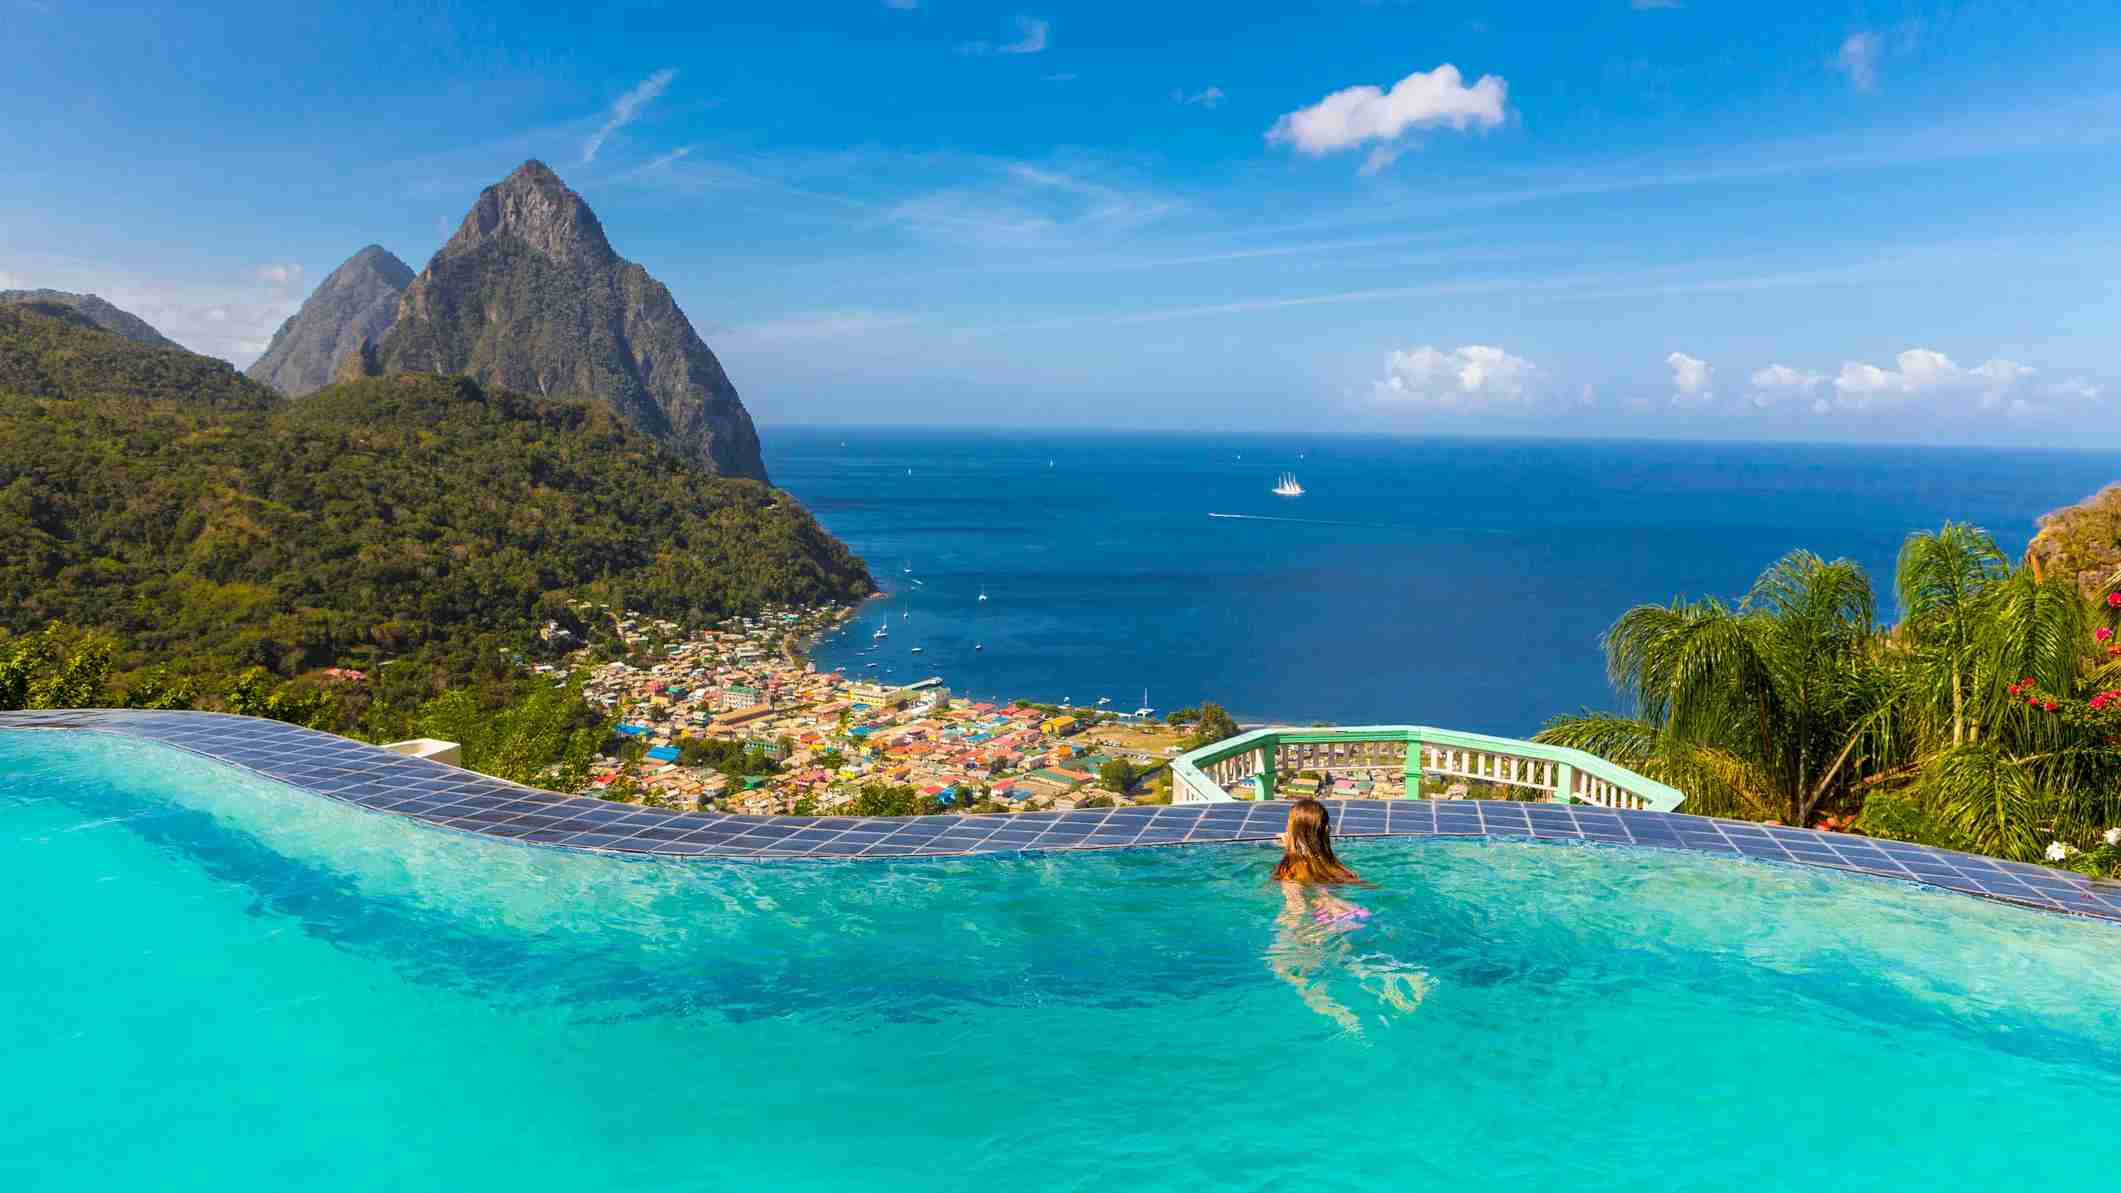 st. lucia / st lucia